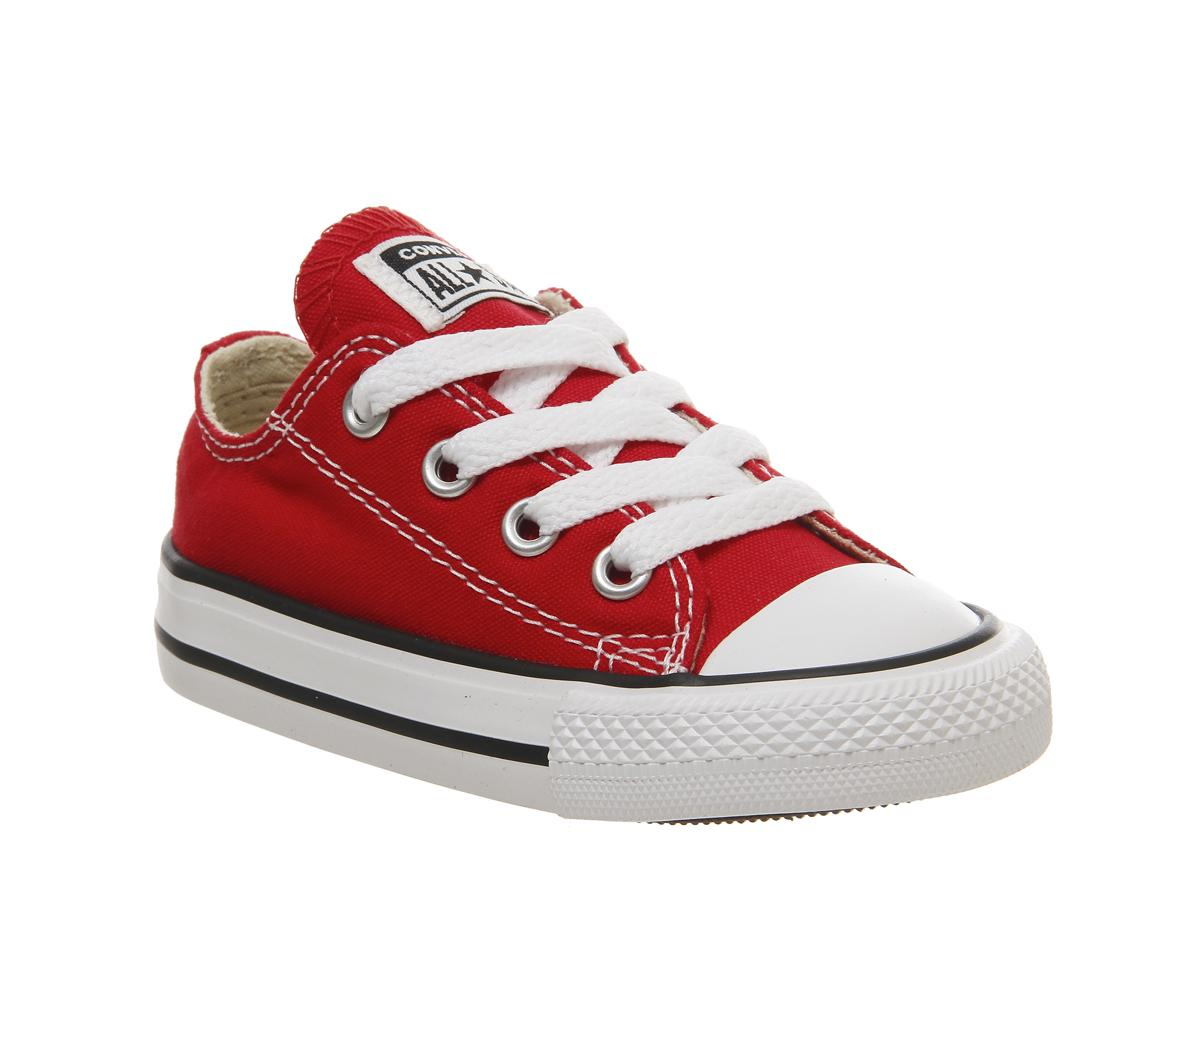 Converse All Star Low Infant Shoes Red